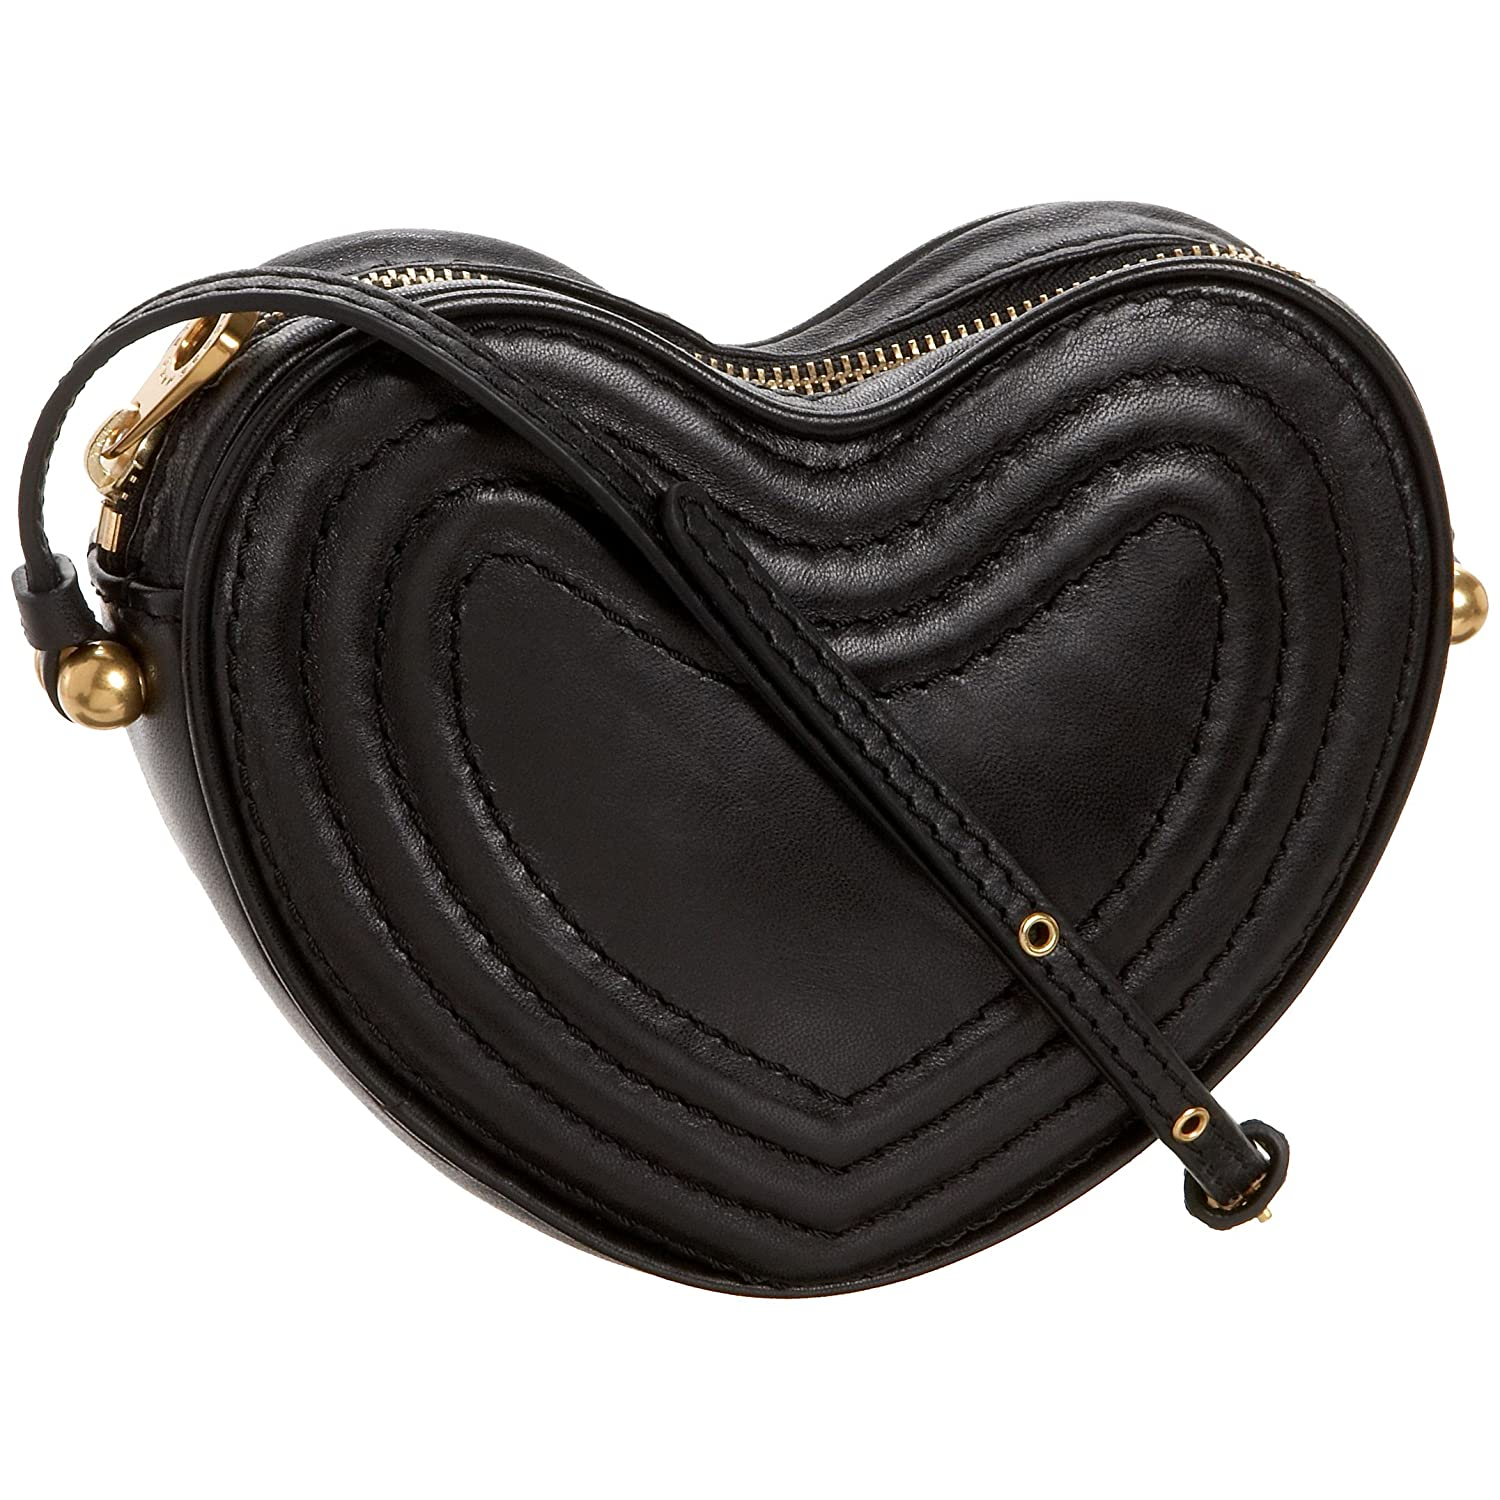 Marc by Marc Jacobs - Trapped! Heart Cross-Body :  leather bag crossbody bag bag cross body